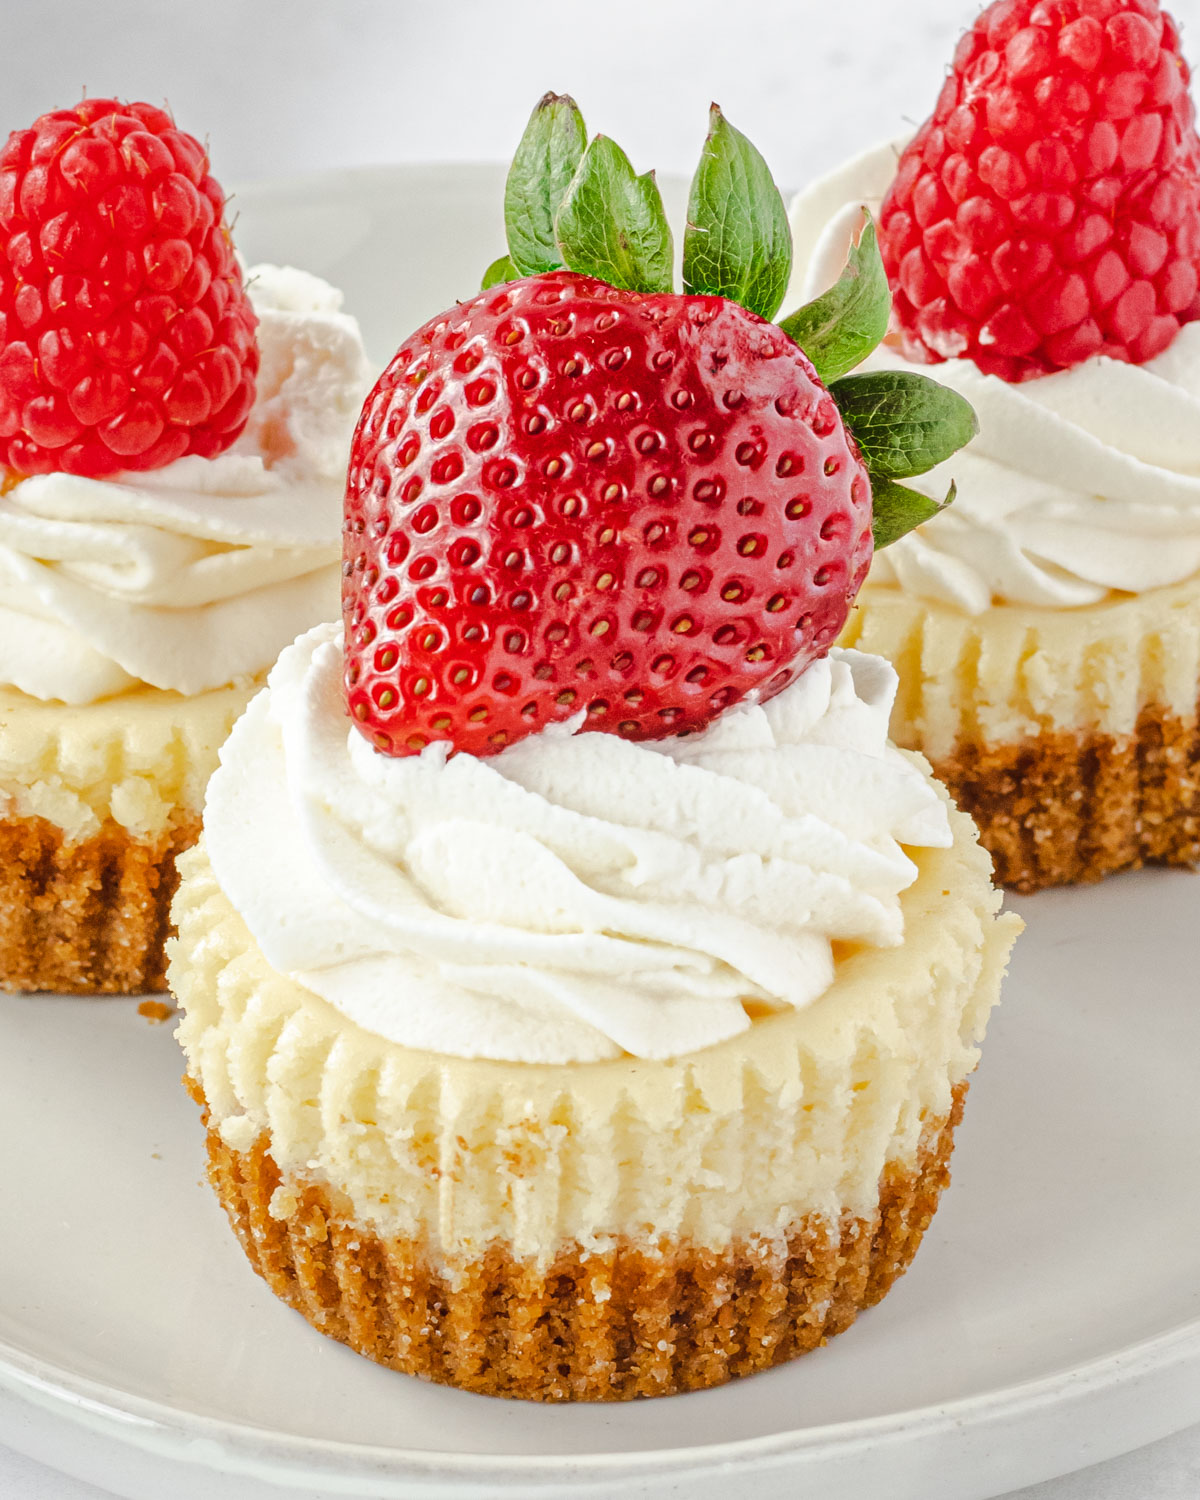 Close up of 3 mini cheesecakes on a plate, with whipped cream and strawberry on front one, and raspberry on back 2.